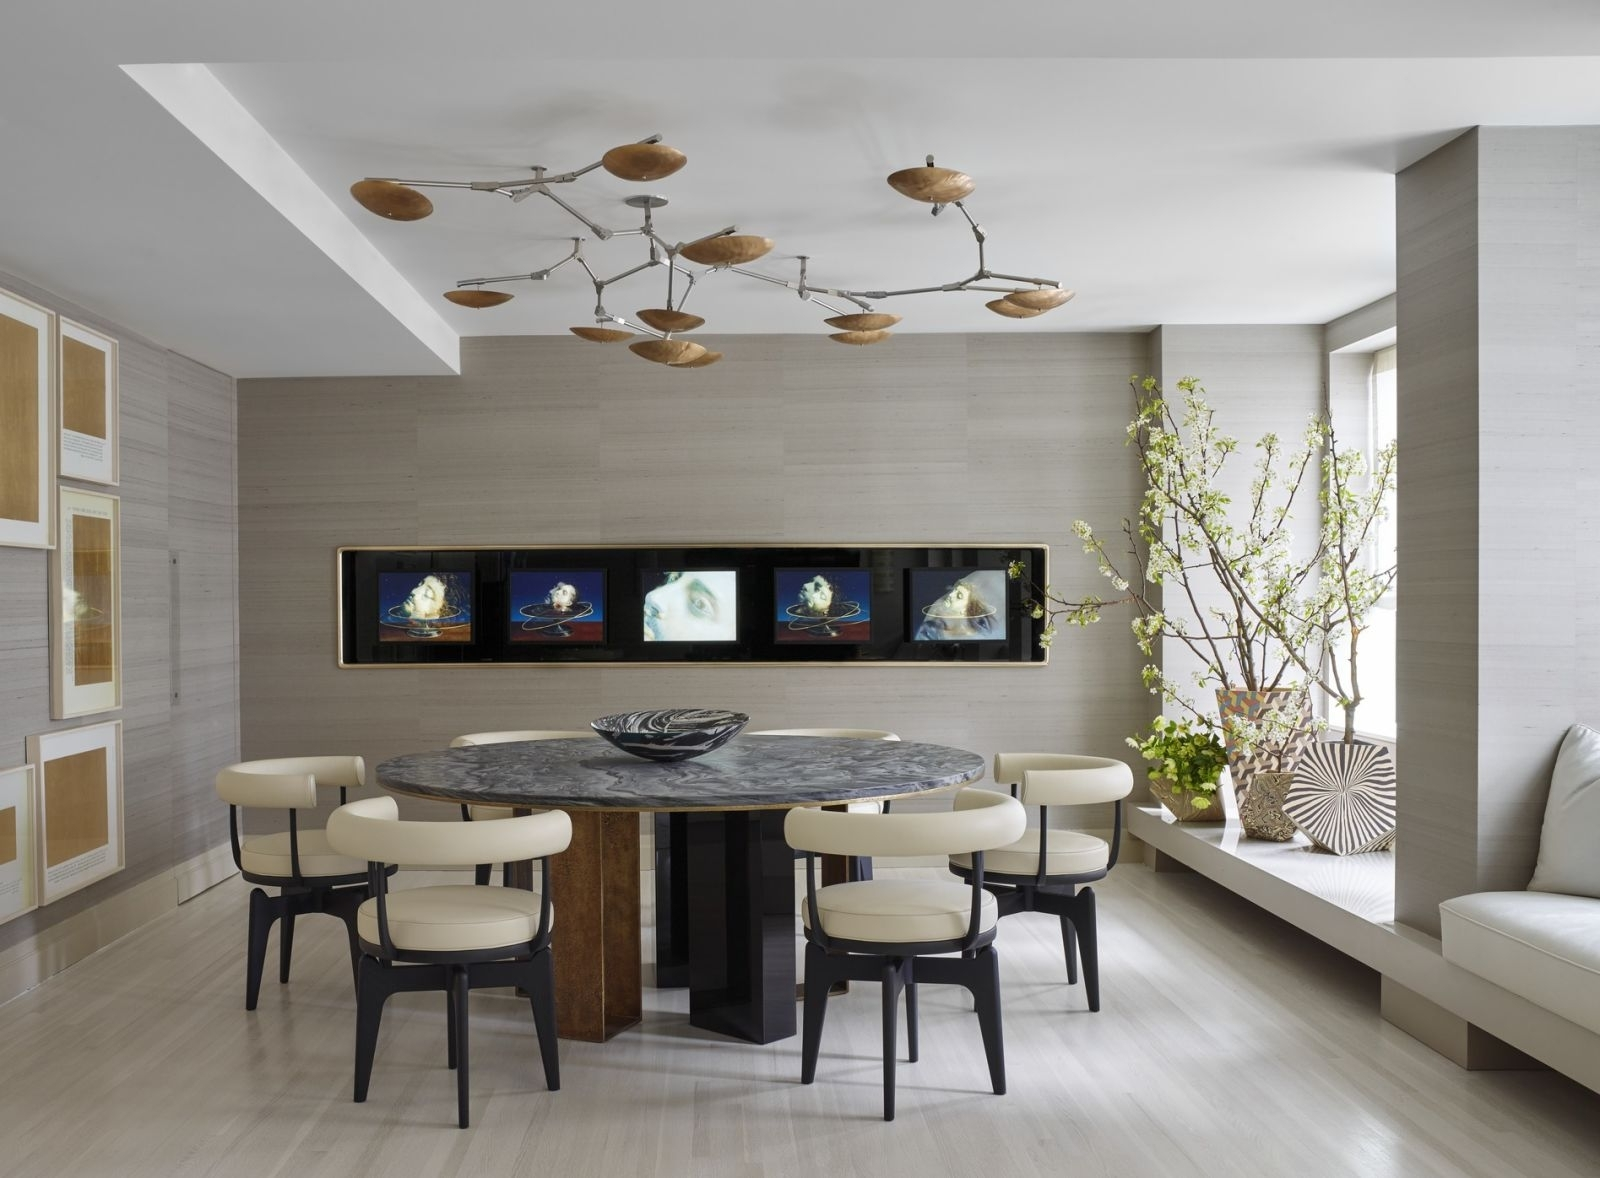 25 Trendiest Modern Dining Tables For Your Dining Space Inside Most Popular Modern Dining Room Furniture (Gallery 23 of 25)